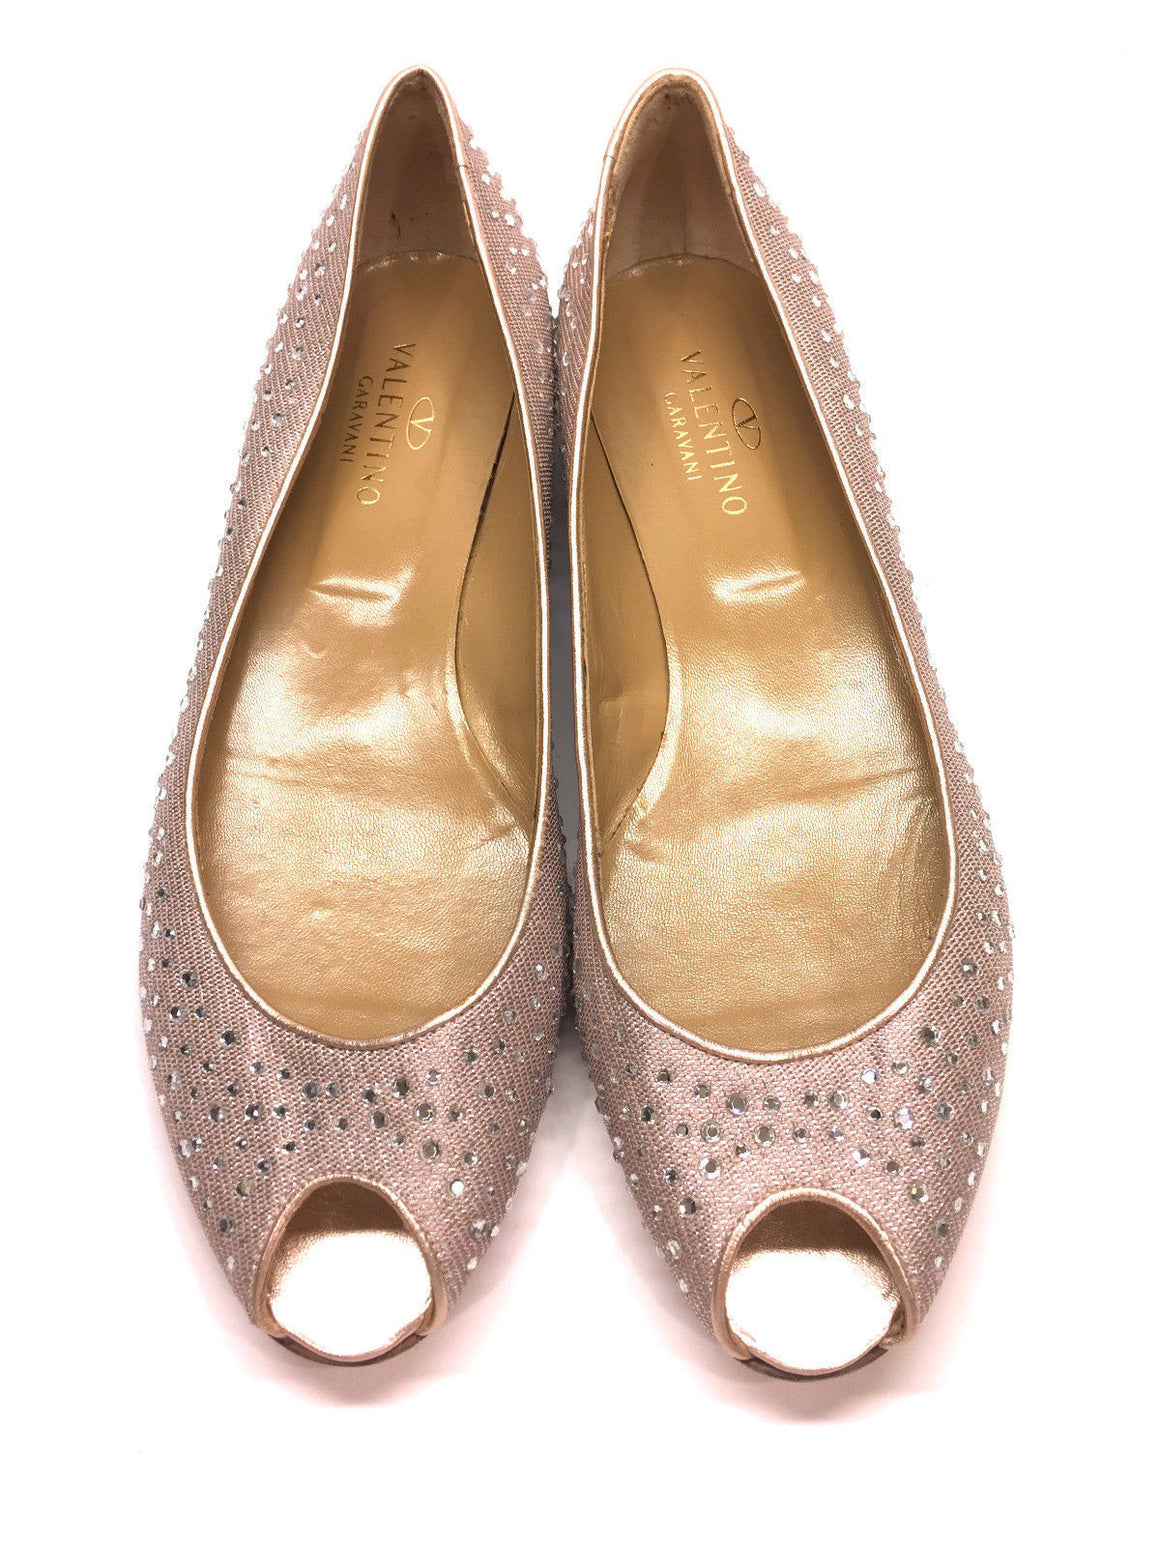 bisbiz.com VALENTINO GARAVANI Crystal-Studded Rose-Quartz Pink Peep-Toe Flats Shoes Size: 41.5/11 - Bis Luxury Resale